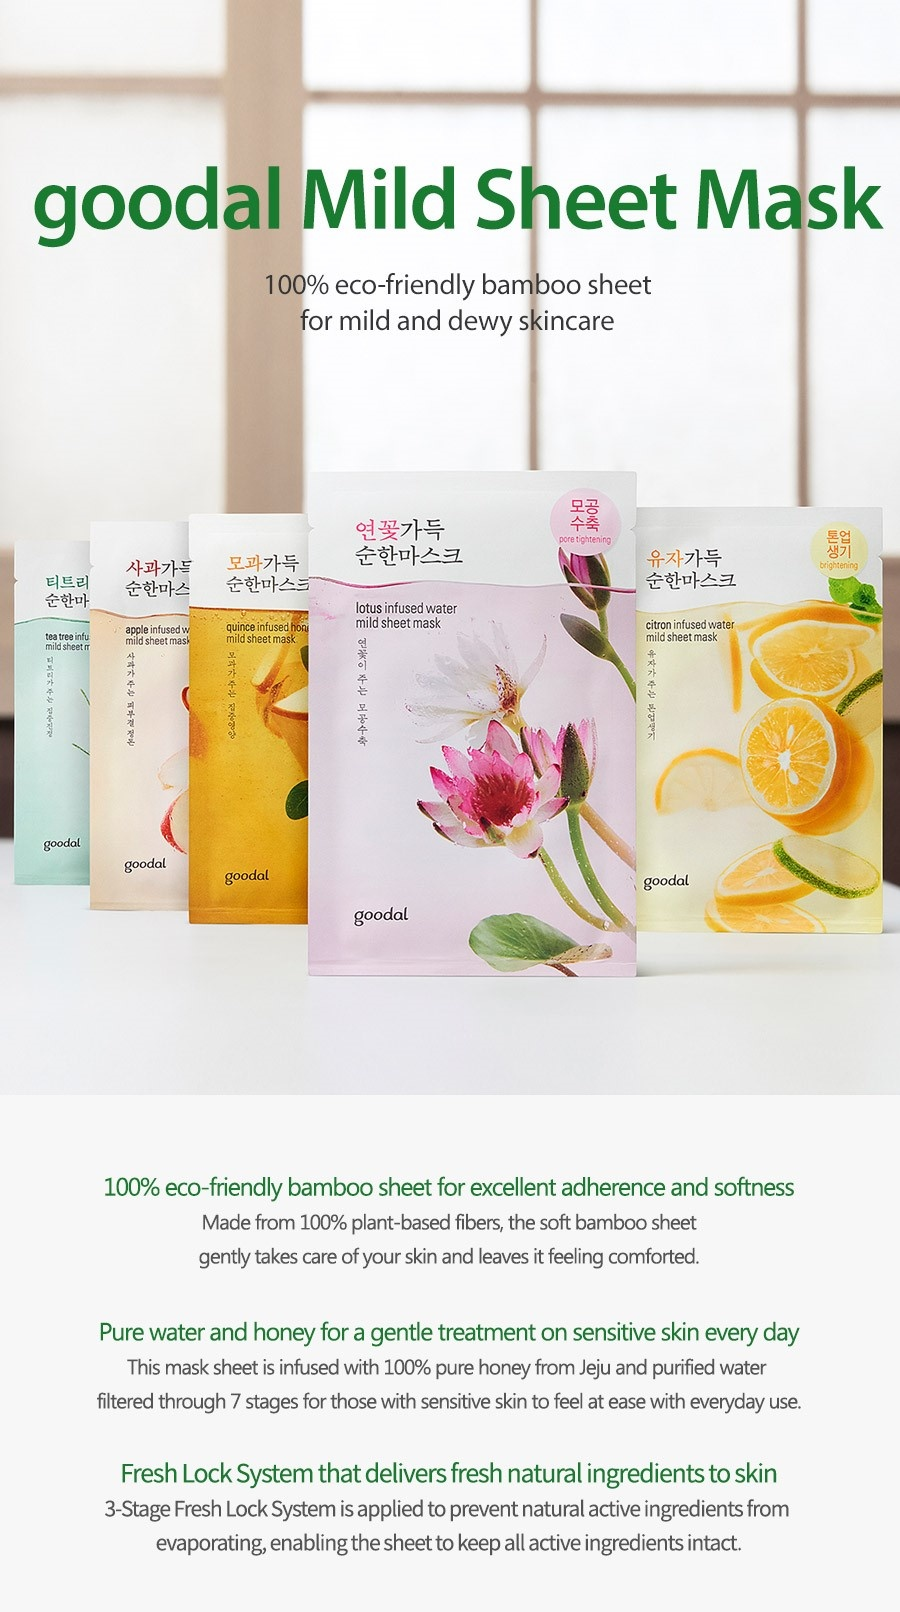 citron infused water mild sheet mask-2